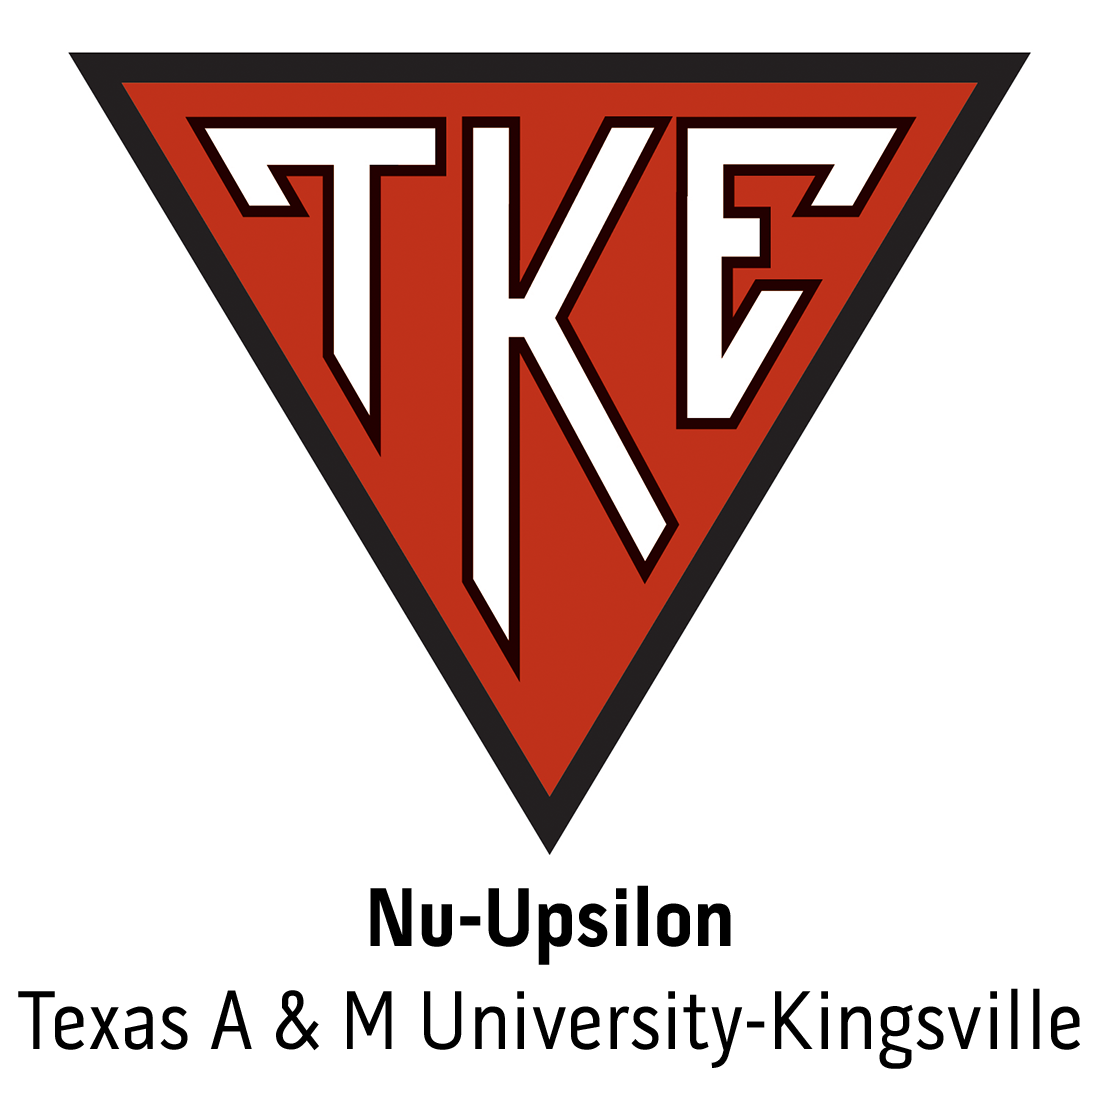 Nu-Upsilon Chapter at Texas A & M University-Kingsville